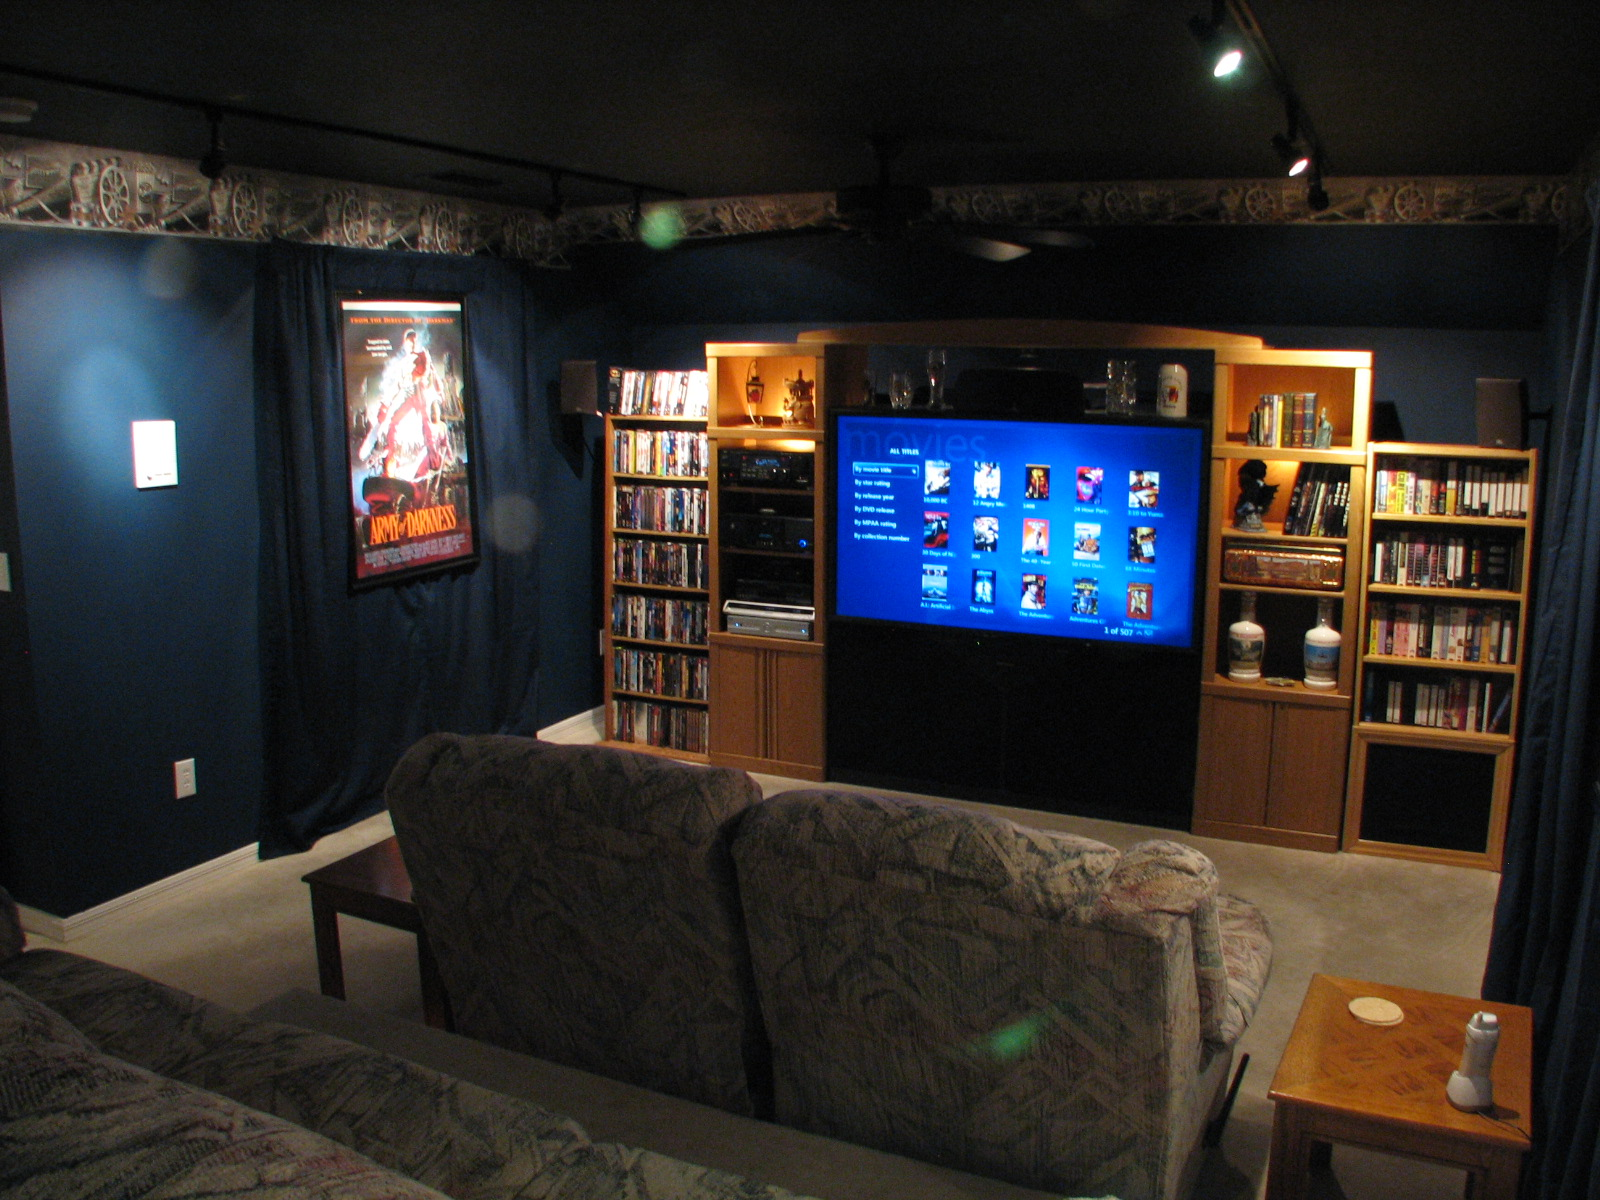 Magnolia Stereo | Best Buy Boca Raton Mall | Magnolia Home Theater